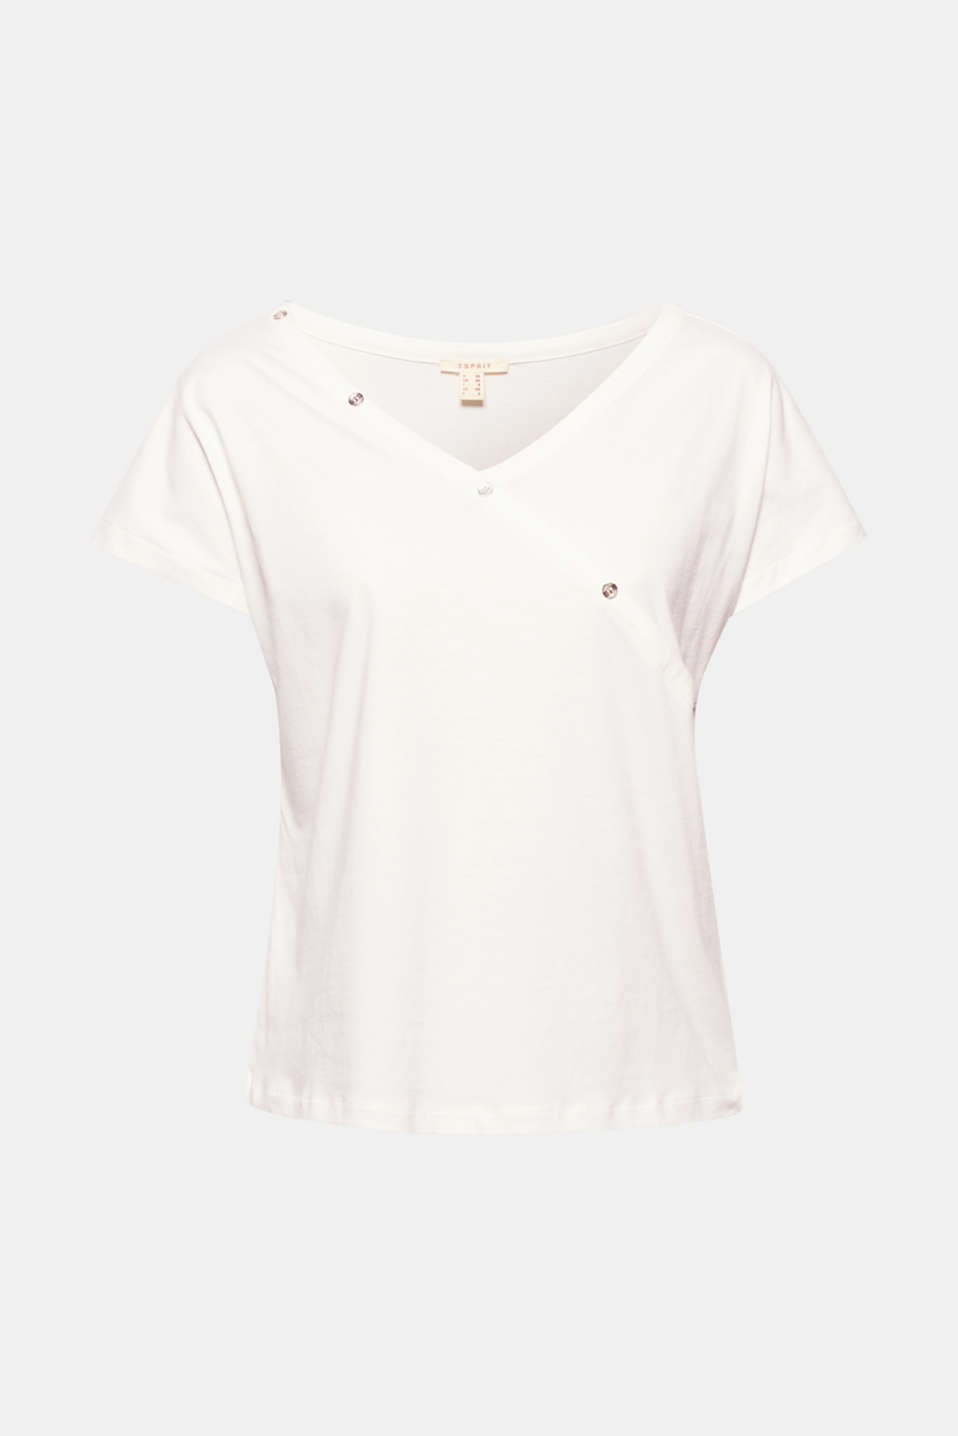 Sensationally slanted: the diagonal button placket gives this soft cotton top new modernity!